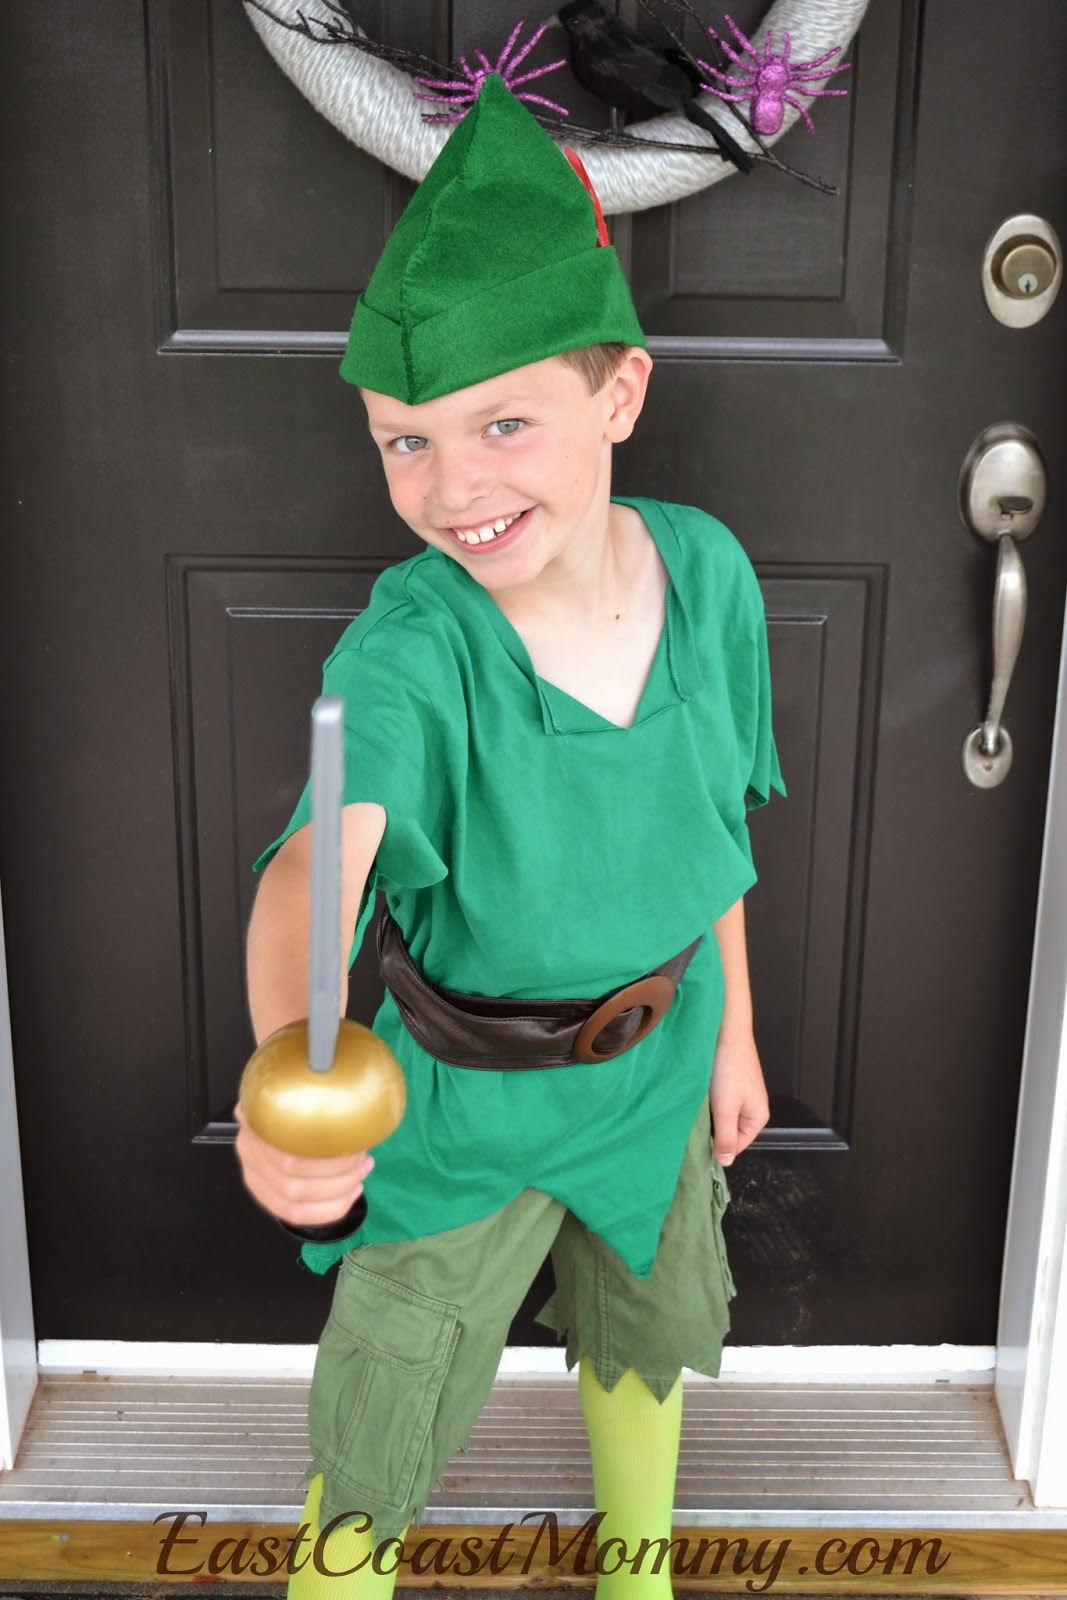 East coast mommy diy peter pan costume for 9 year old boy halloween costume ideas